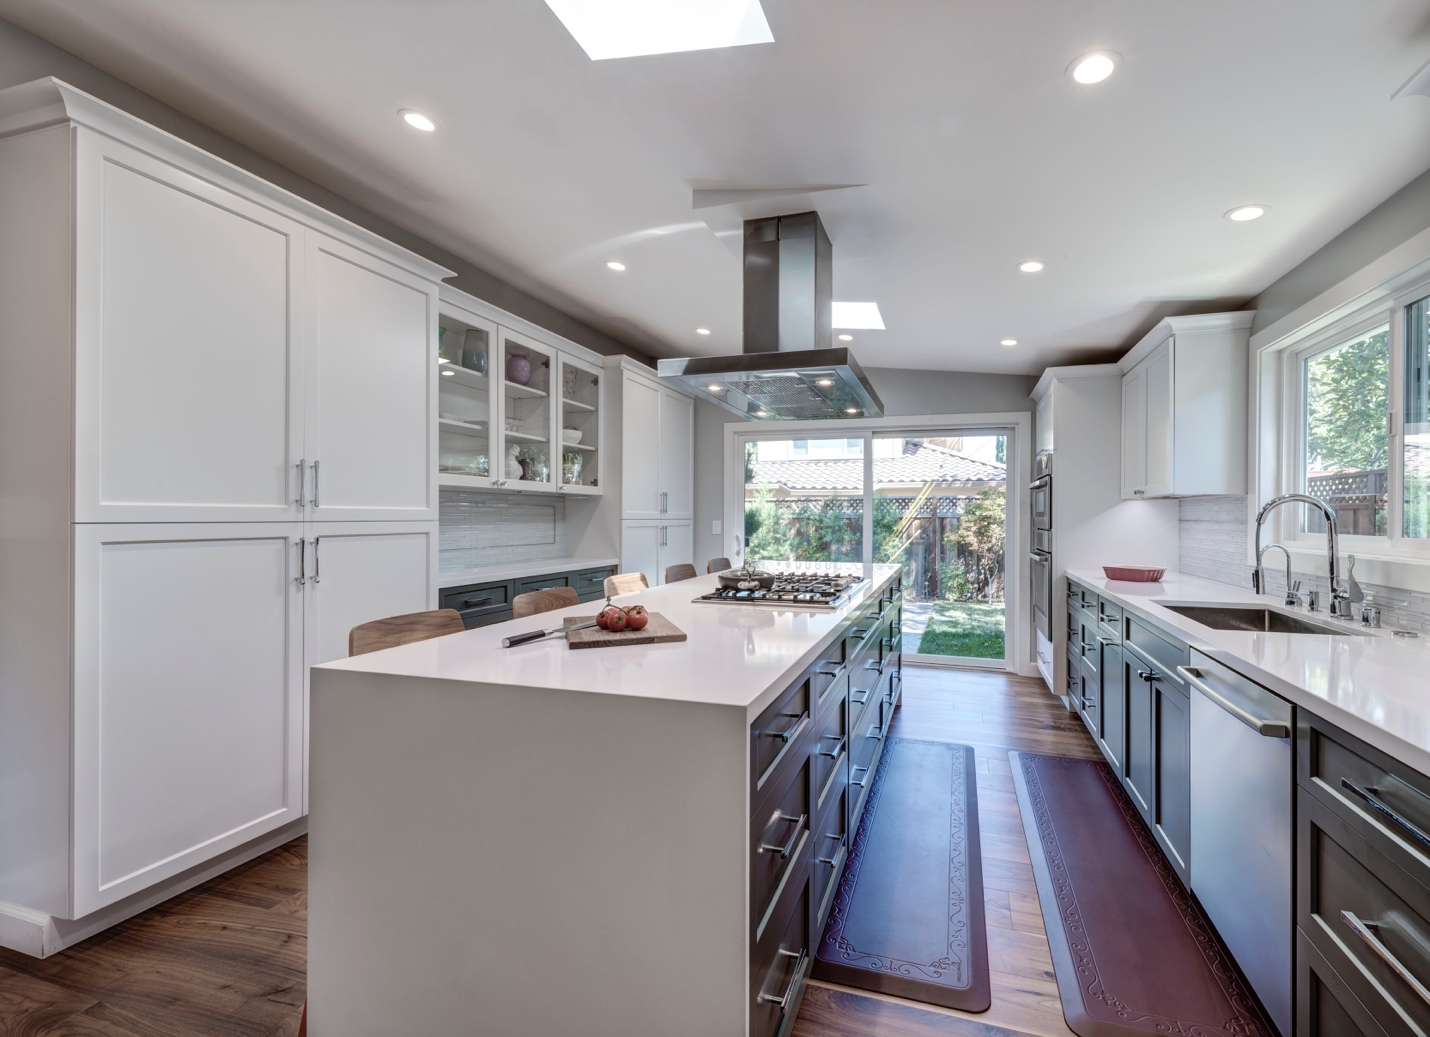 Elegant large kitchen, interior design, architect design, Sunnyvale